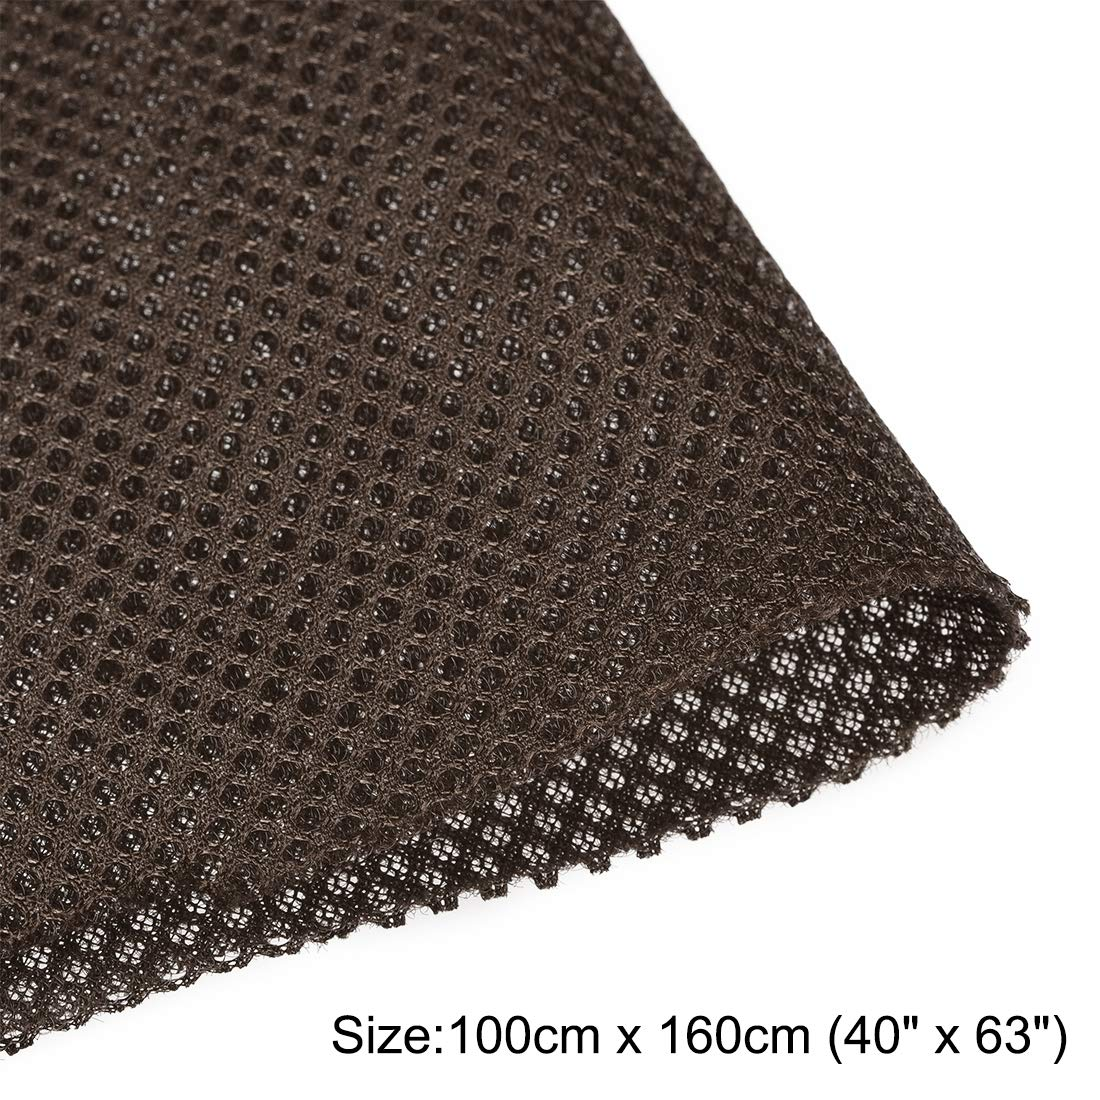 uxcell Red Speaker Mesh Grill Cloth Stereo Box Fabric Dustproof Audio Cloth 50cm x 160cm 20 inches x 63 inches